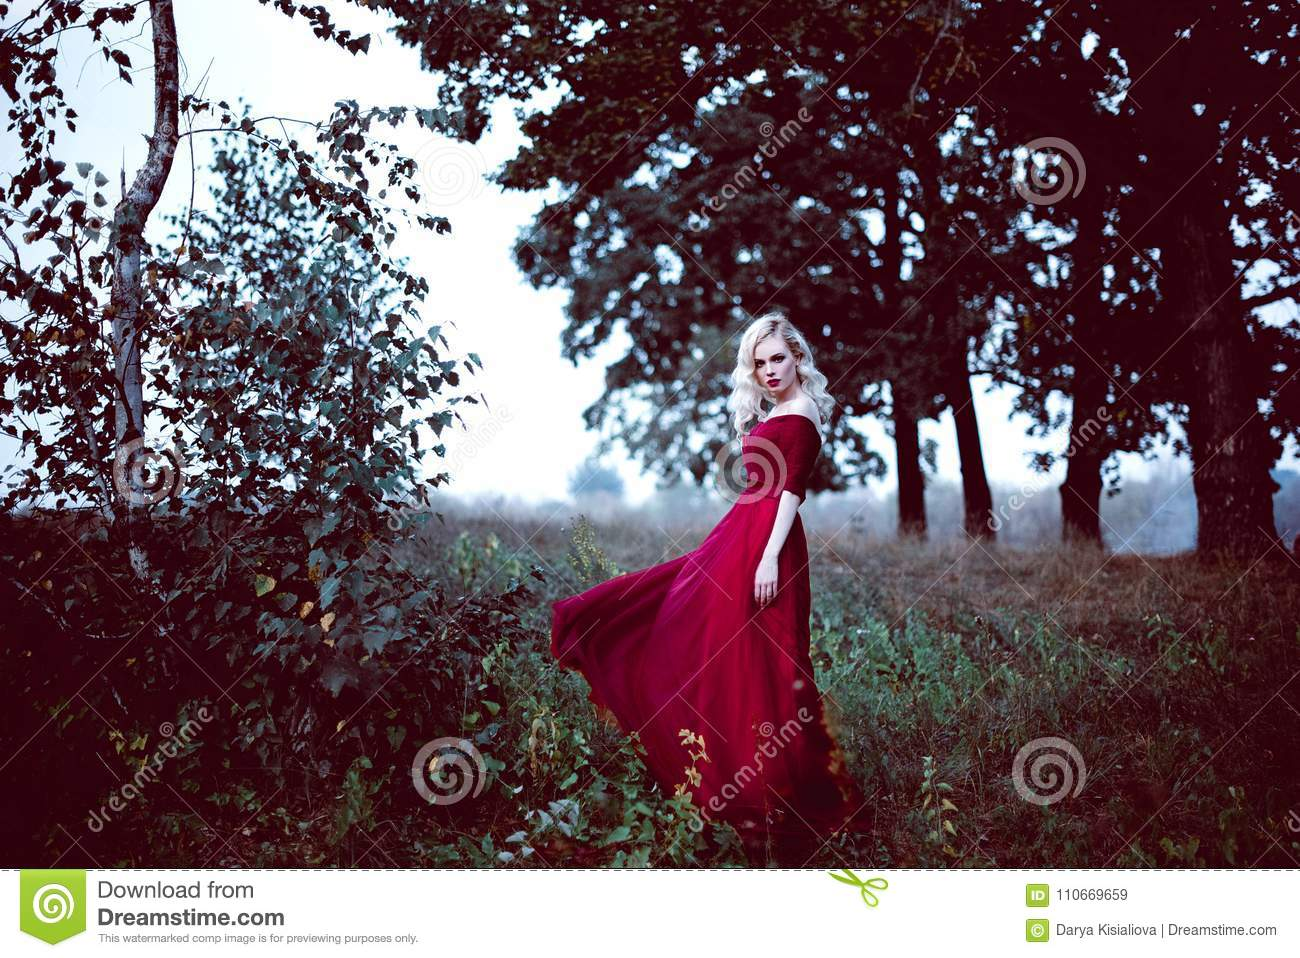 Fashion gorgeous young blonde woman in beautiful red dress in a fairy-tale forest. magic atmosphere. Retouched toning shot